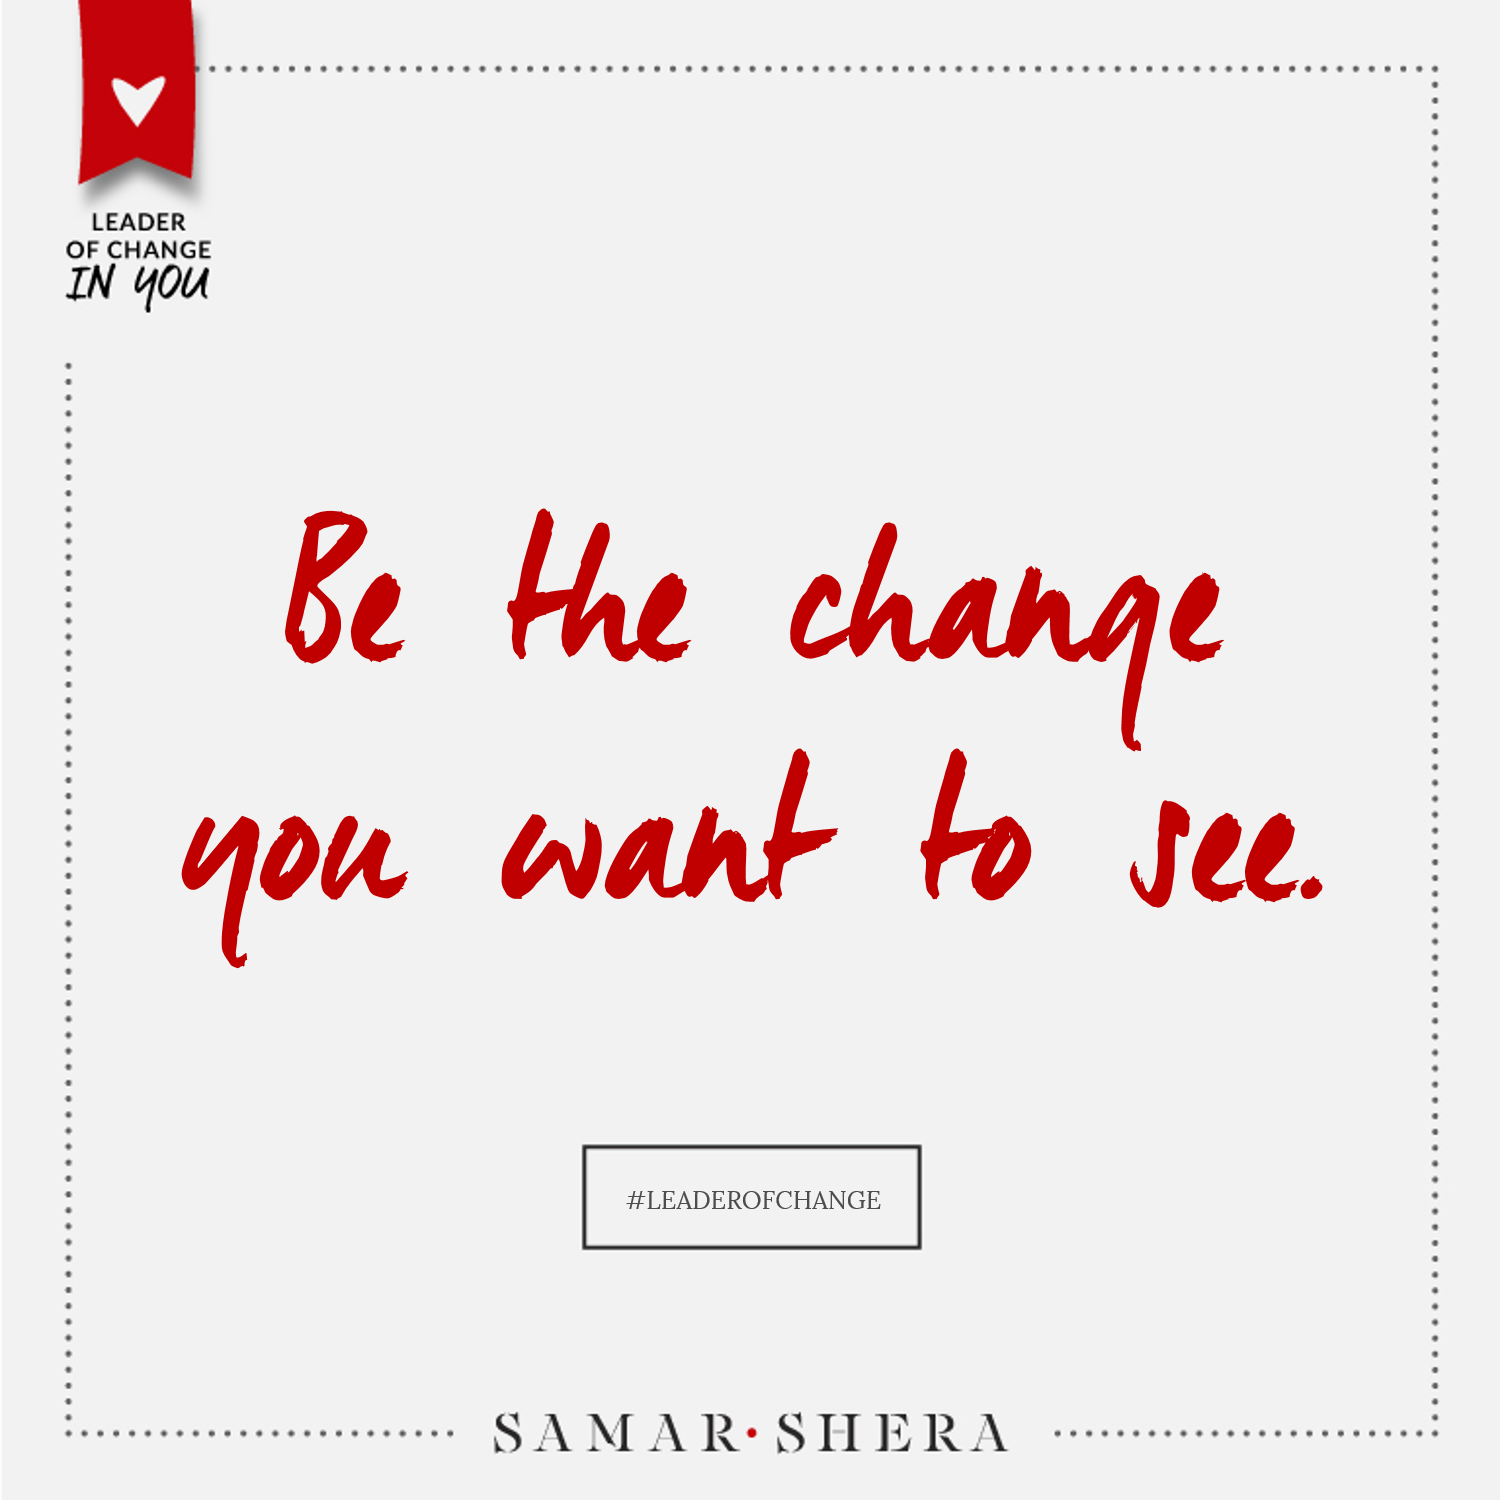 be the change you want to see